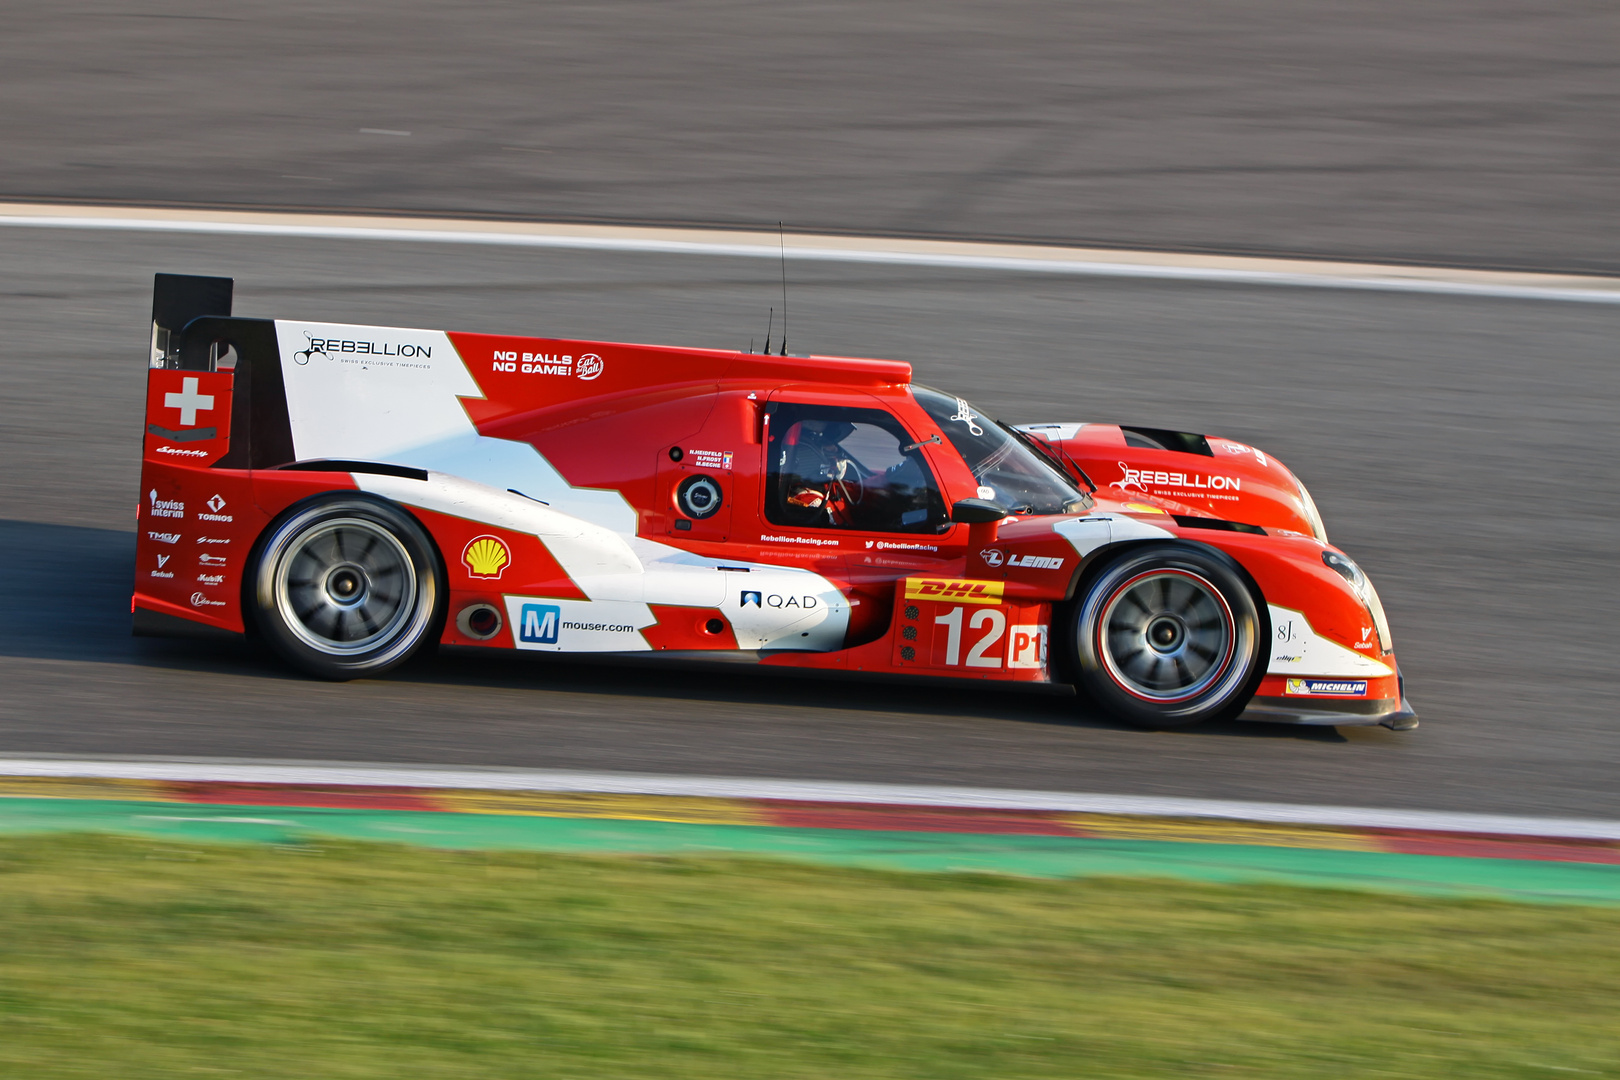 WEC 6 Hours of Spa-Francorchamps 2014 #06